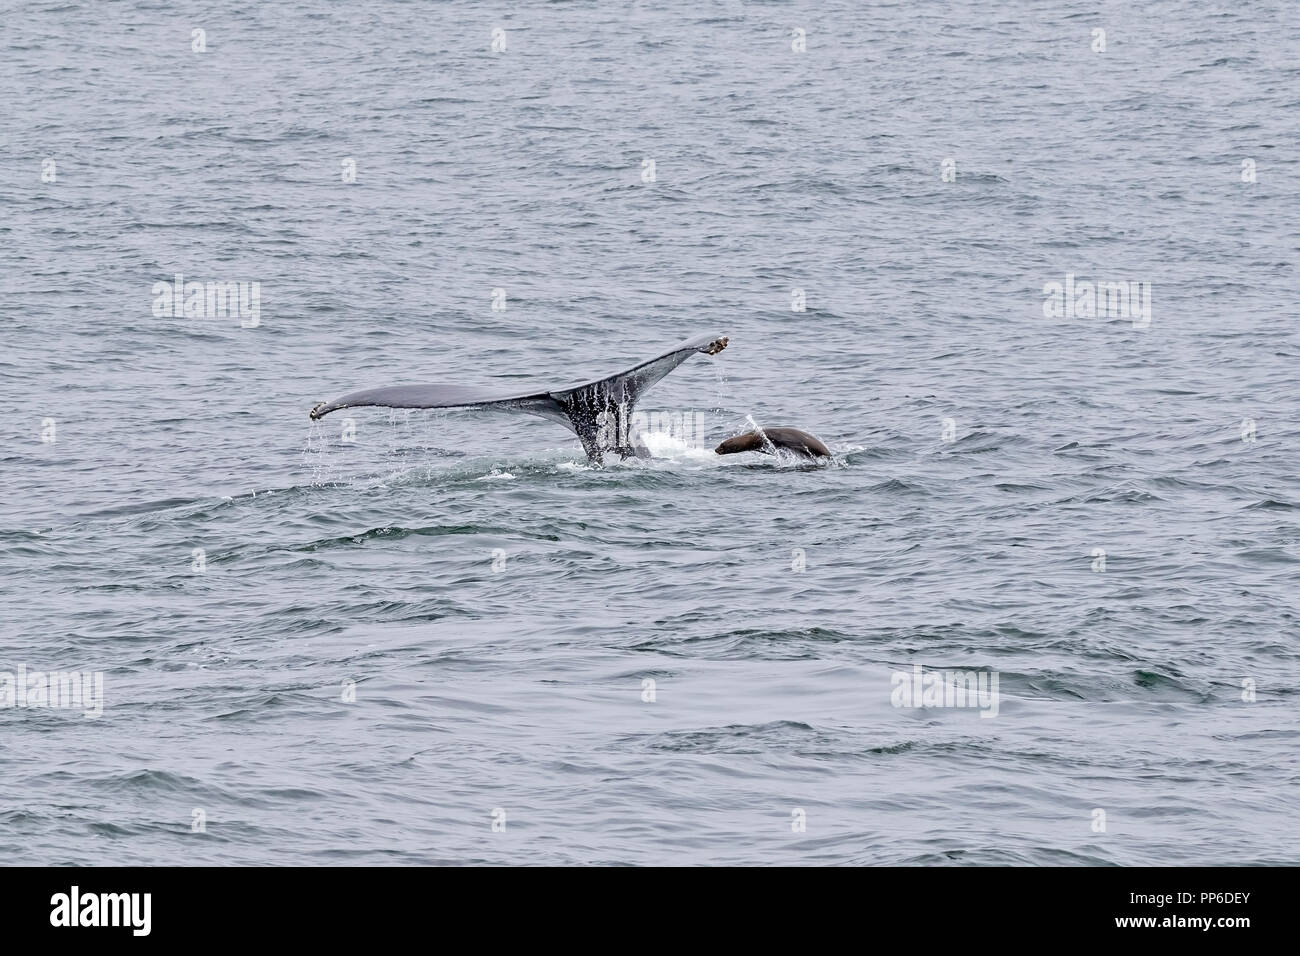 Whale watching humpback whale tail and sea lion - Stock Image